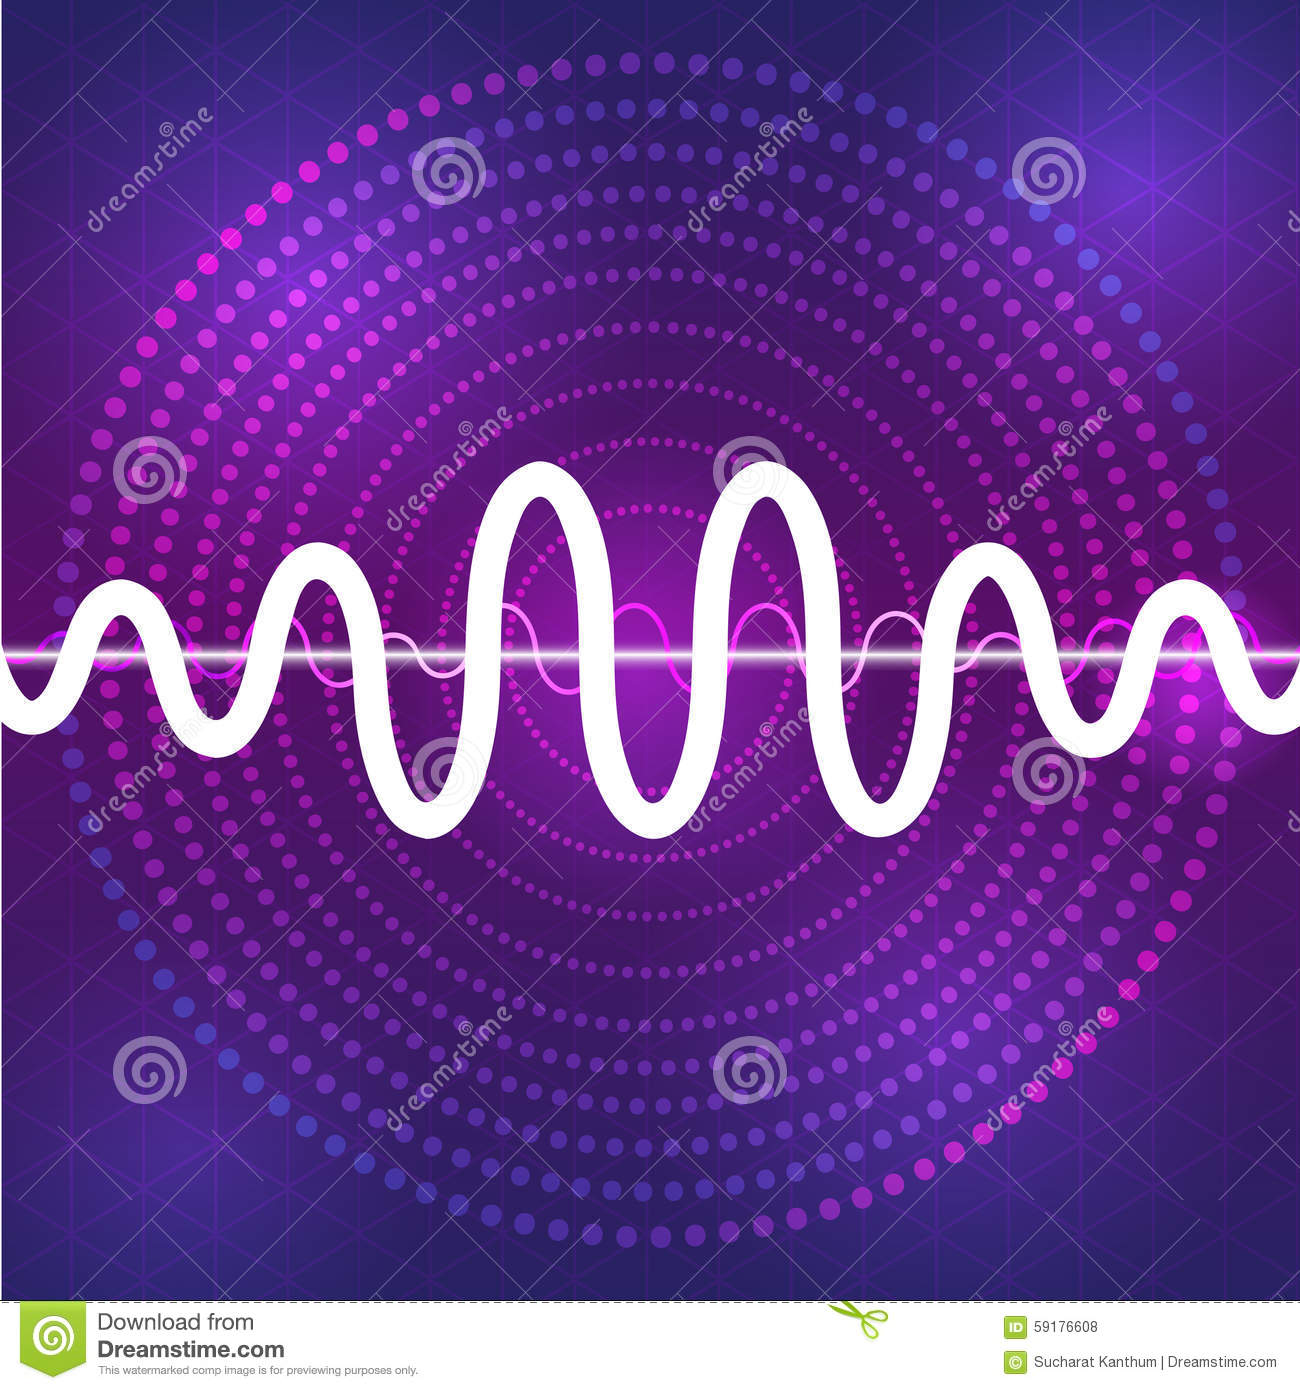 Sound And Audio Waveform Design Background Stock Vector - Image ...